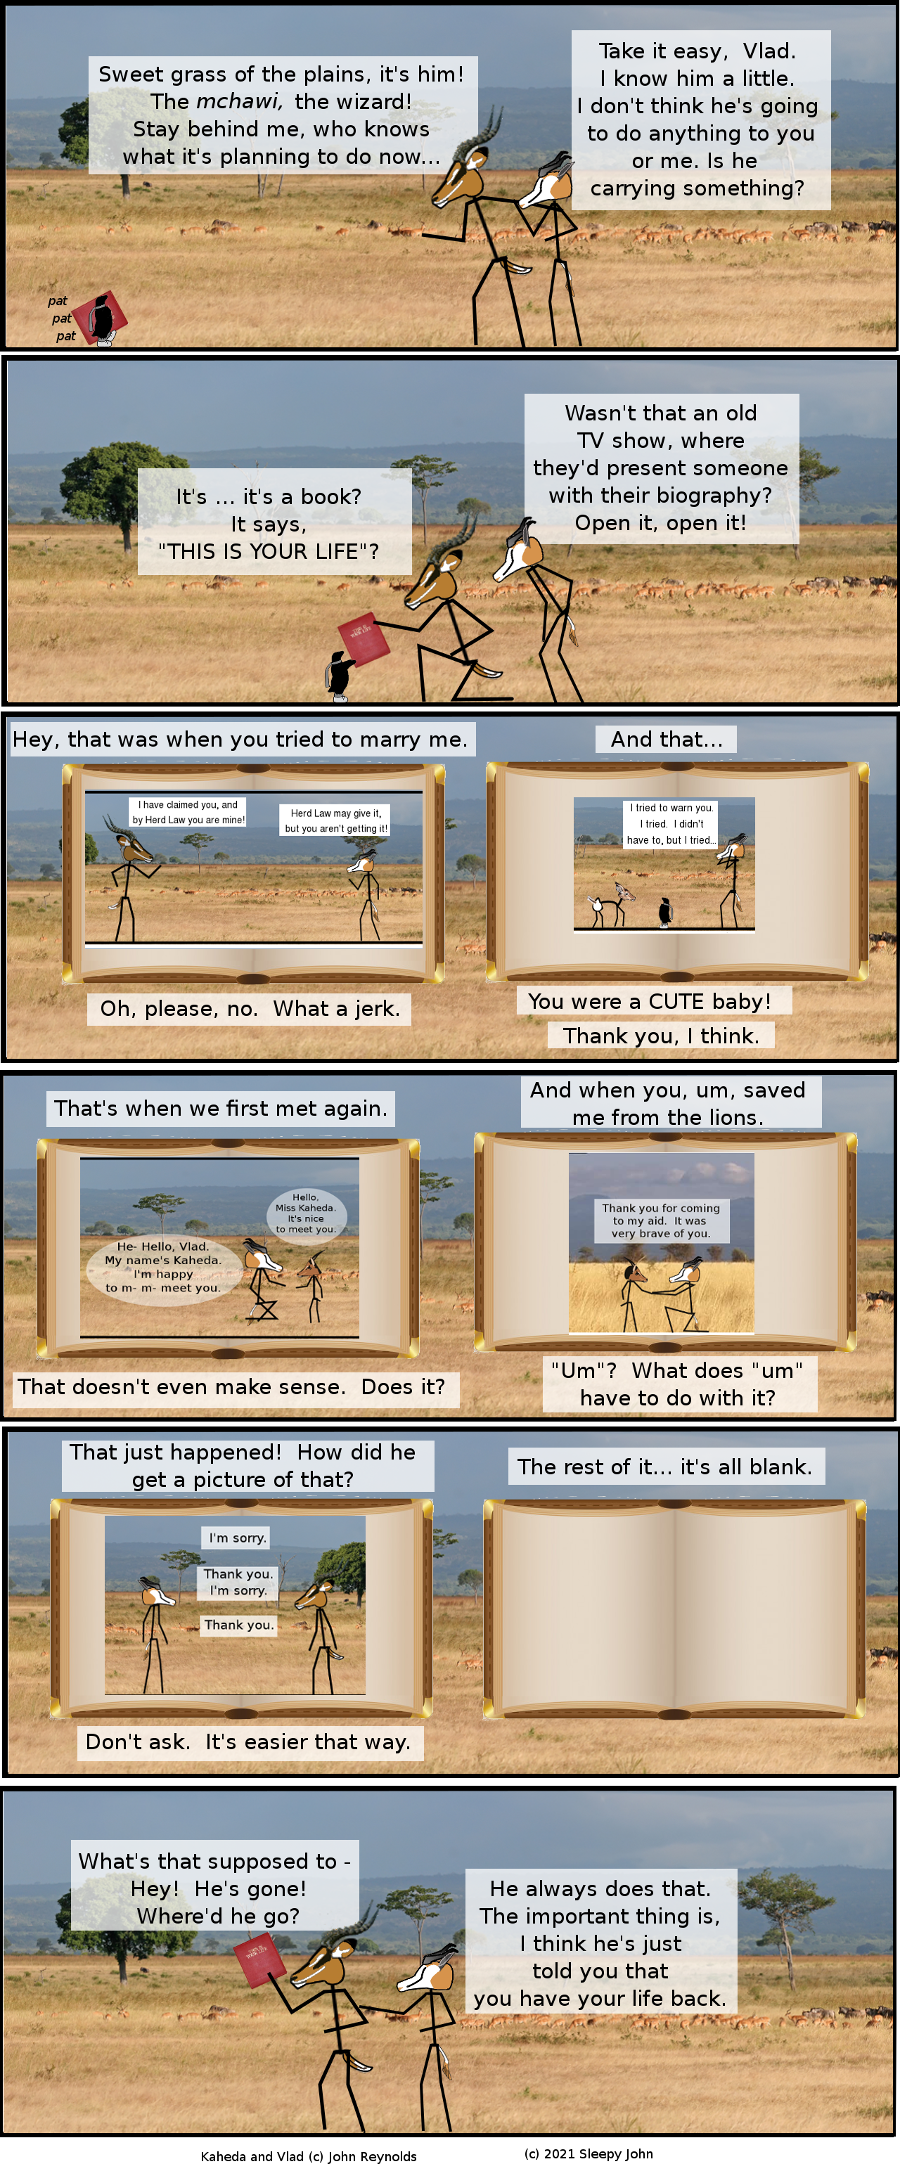 on graphic enabled browsers, the image http://www.hirezfox.com/neoctc/comics/nc20210106.png would be displayed here